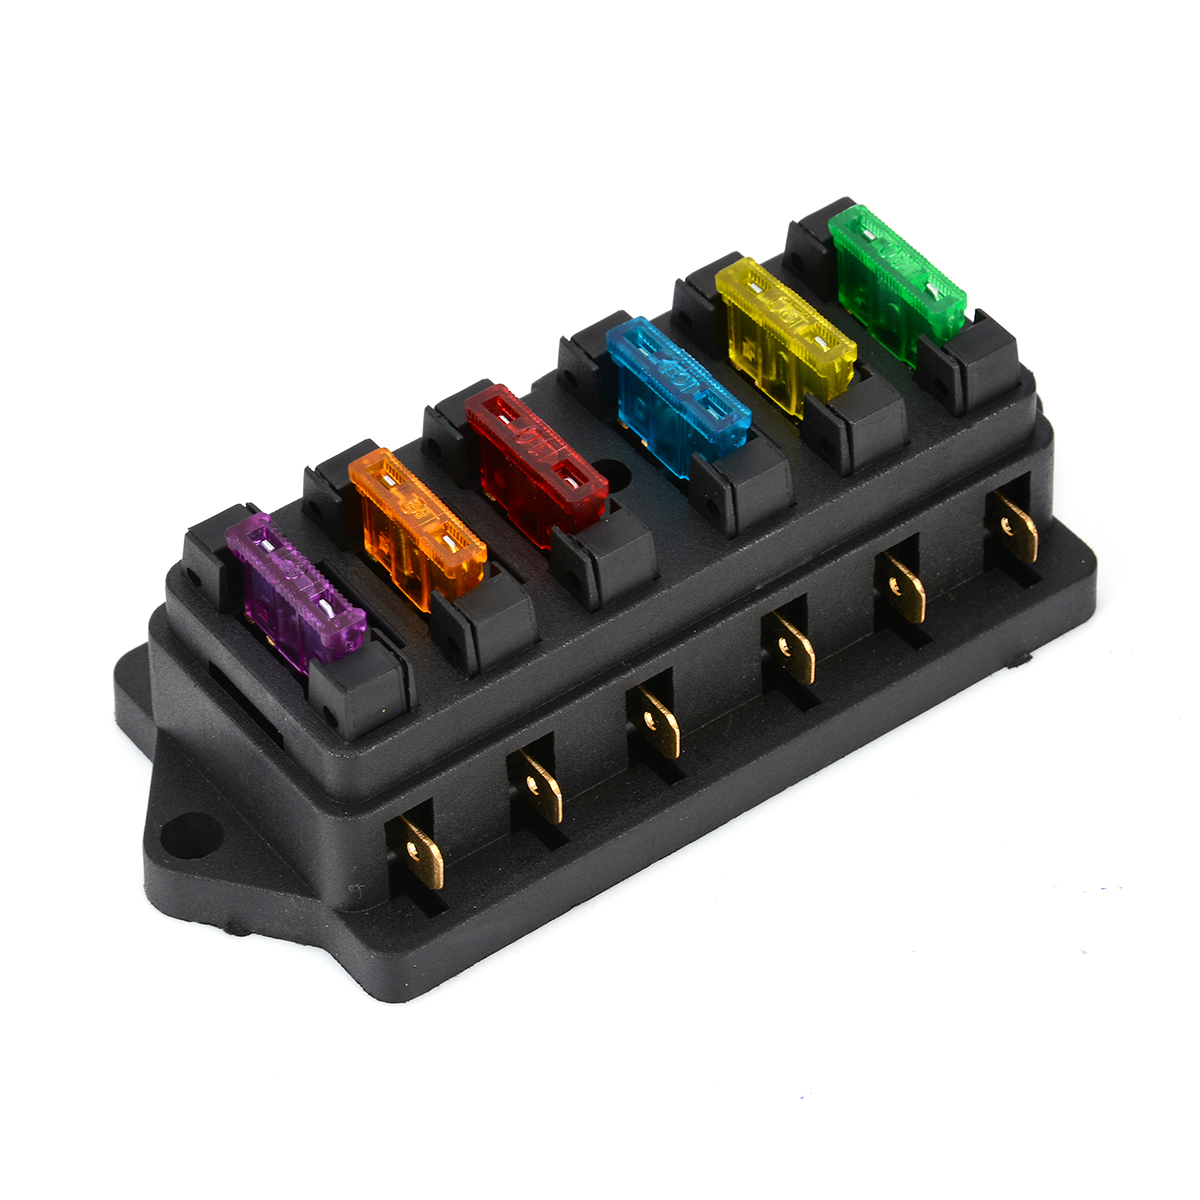 6 Way Circuit Standard Blade Fuse Box Block Holder with 6pcs Fuses DC 12V/24V For Car Boat6 Way Circuit Standard Blade Fuse Box Block Holder with 6pcs Fuses DC 12V/24V For Car Boat